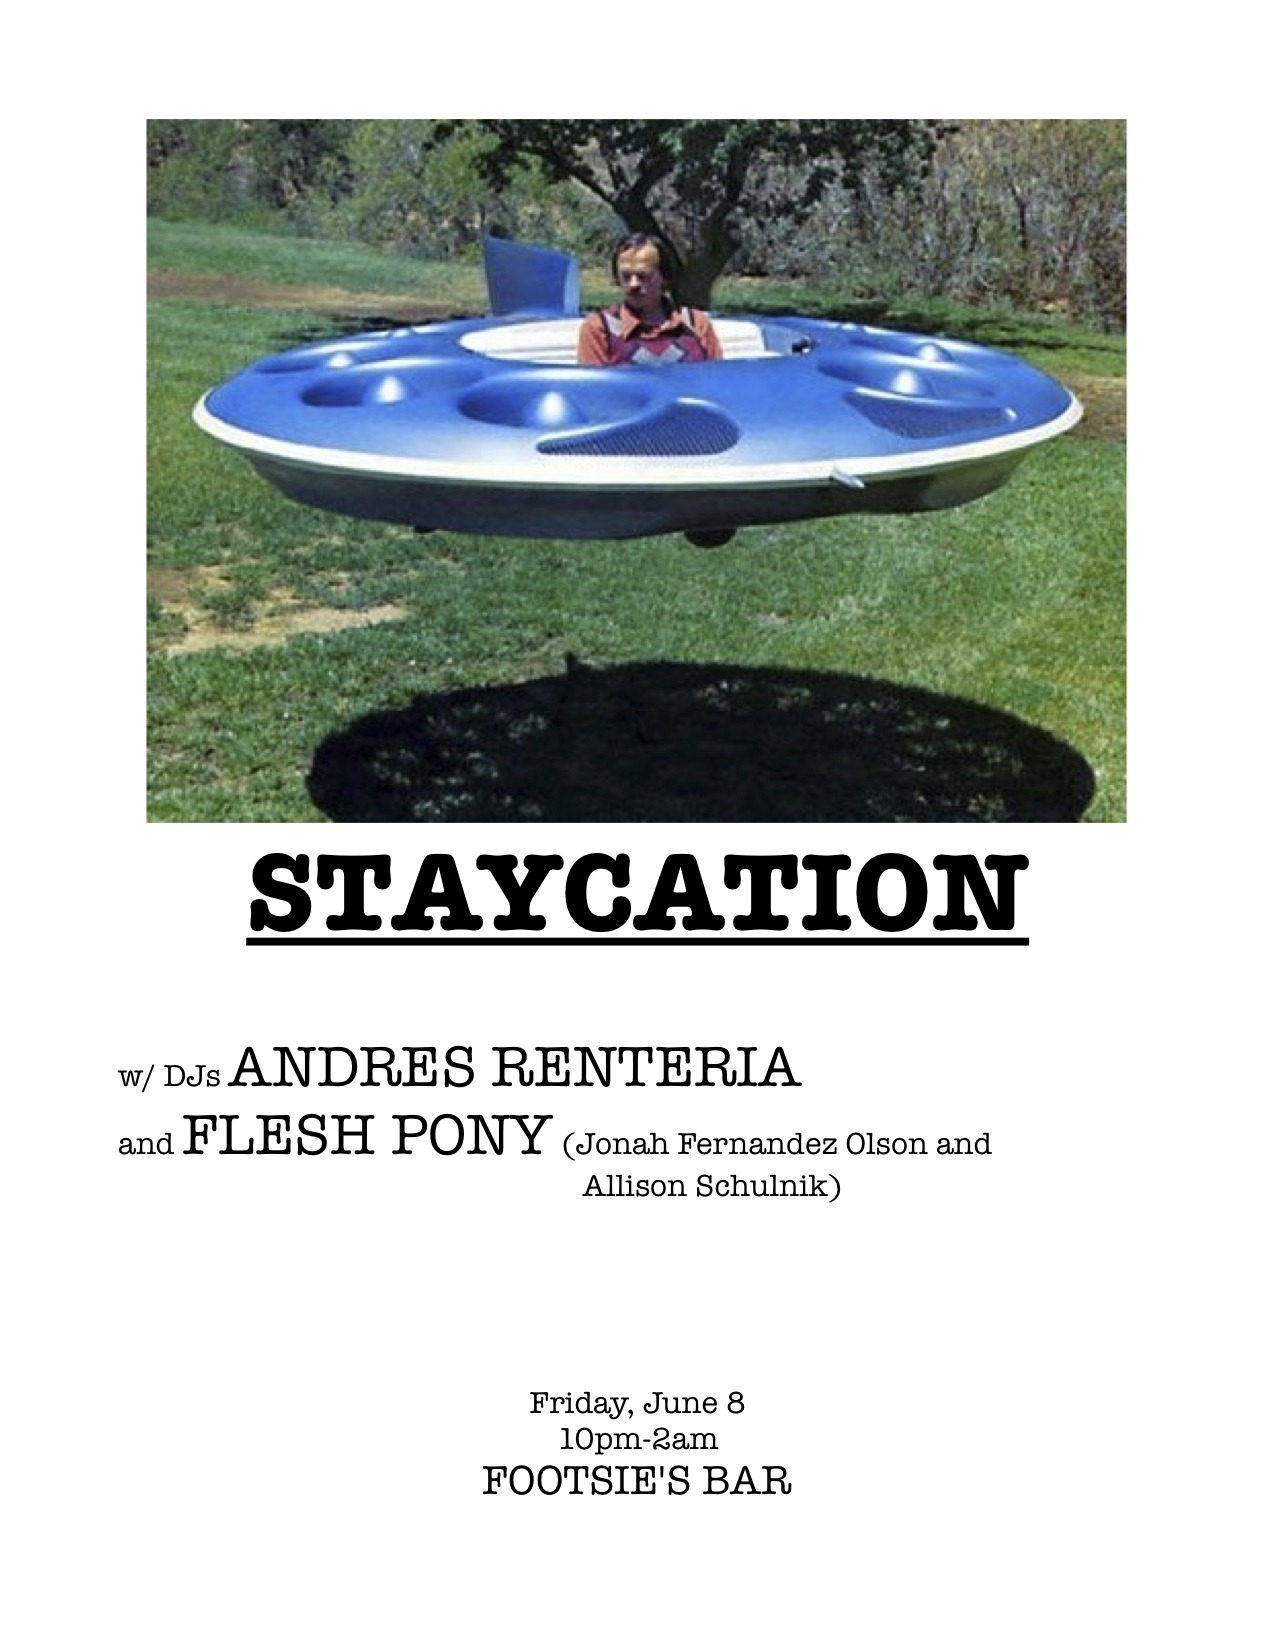 This Friday at STAYCATION located at Footsie's Bar, 2640 N. Figueroa St., L.A. 90065 DJs Andres Renteria and Flesh Pony (Jonah Fernandez Olson and Allison Schulnik)…we're gonna play dance music and you're gonna dance!  FREE!  10pm-2am